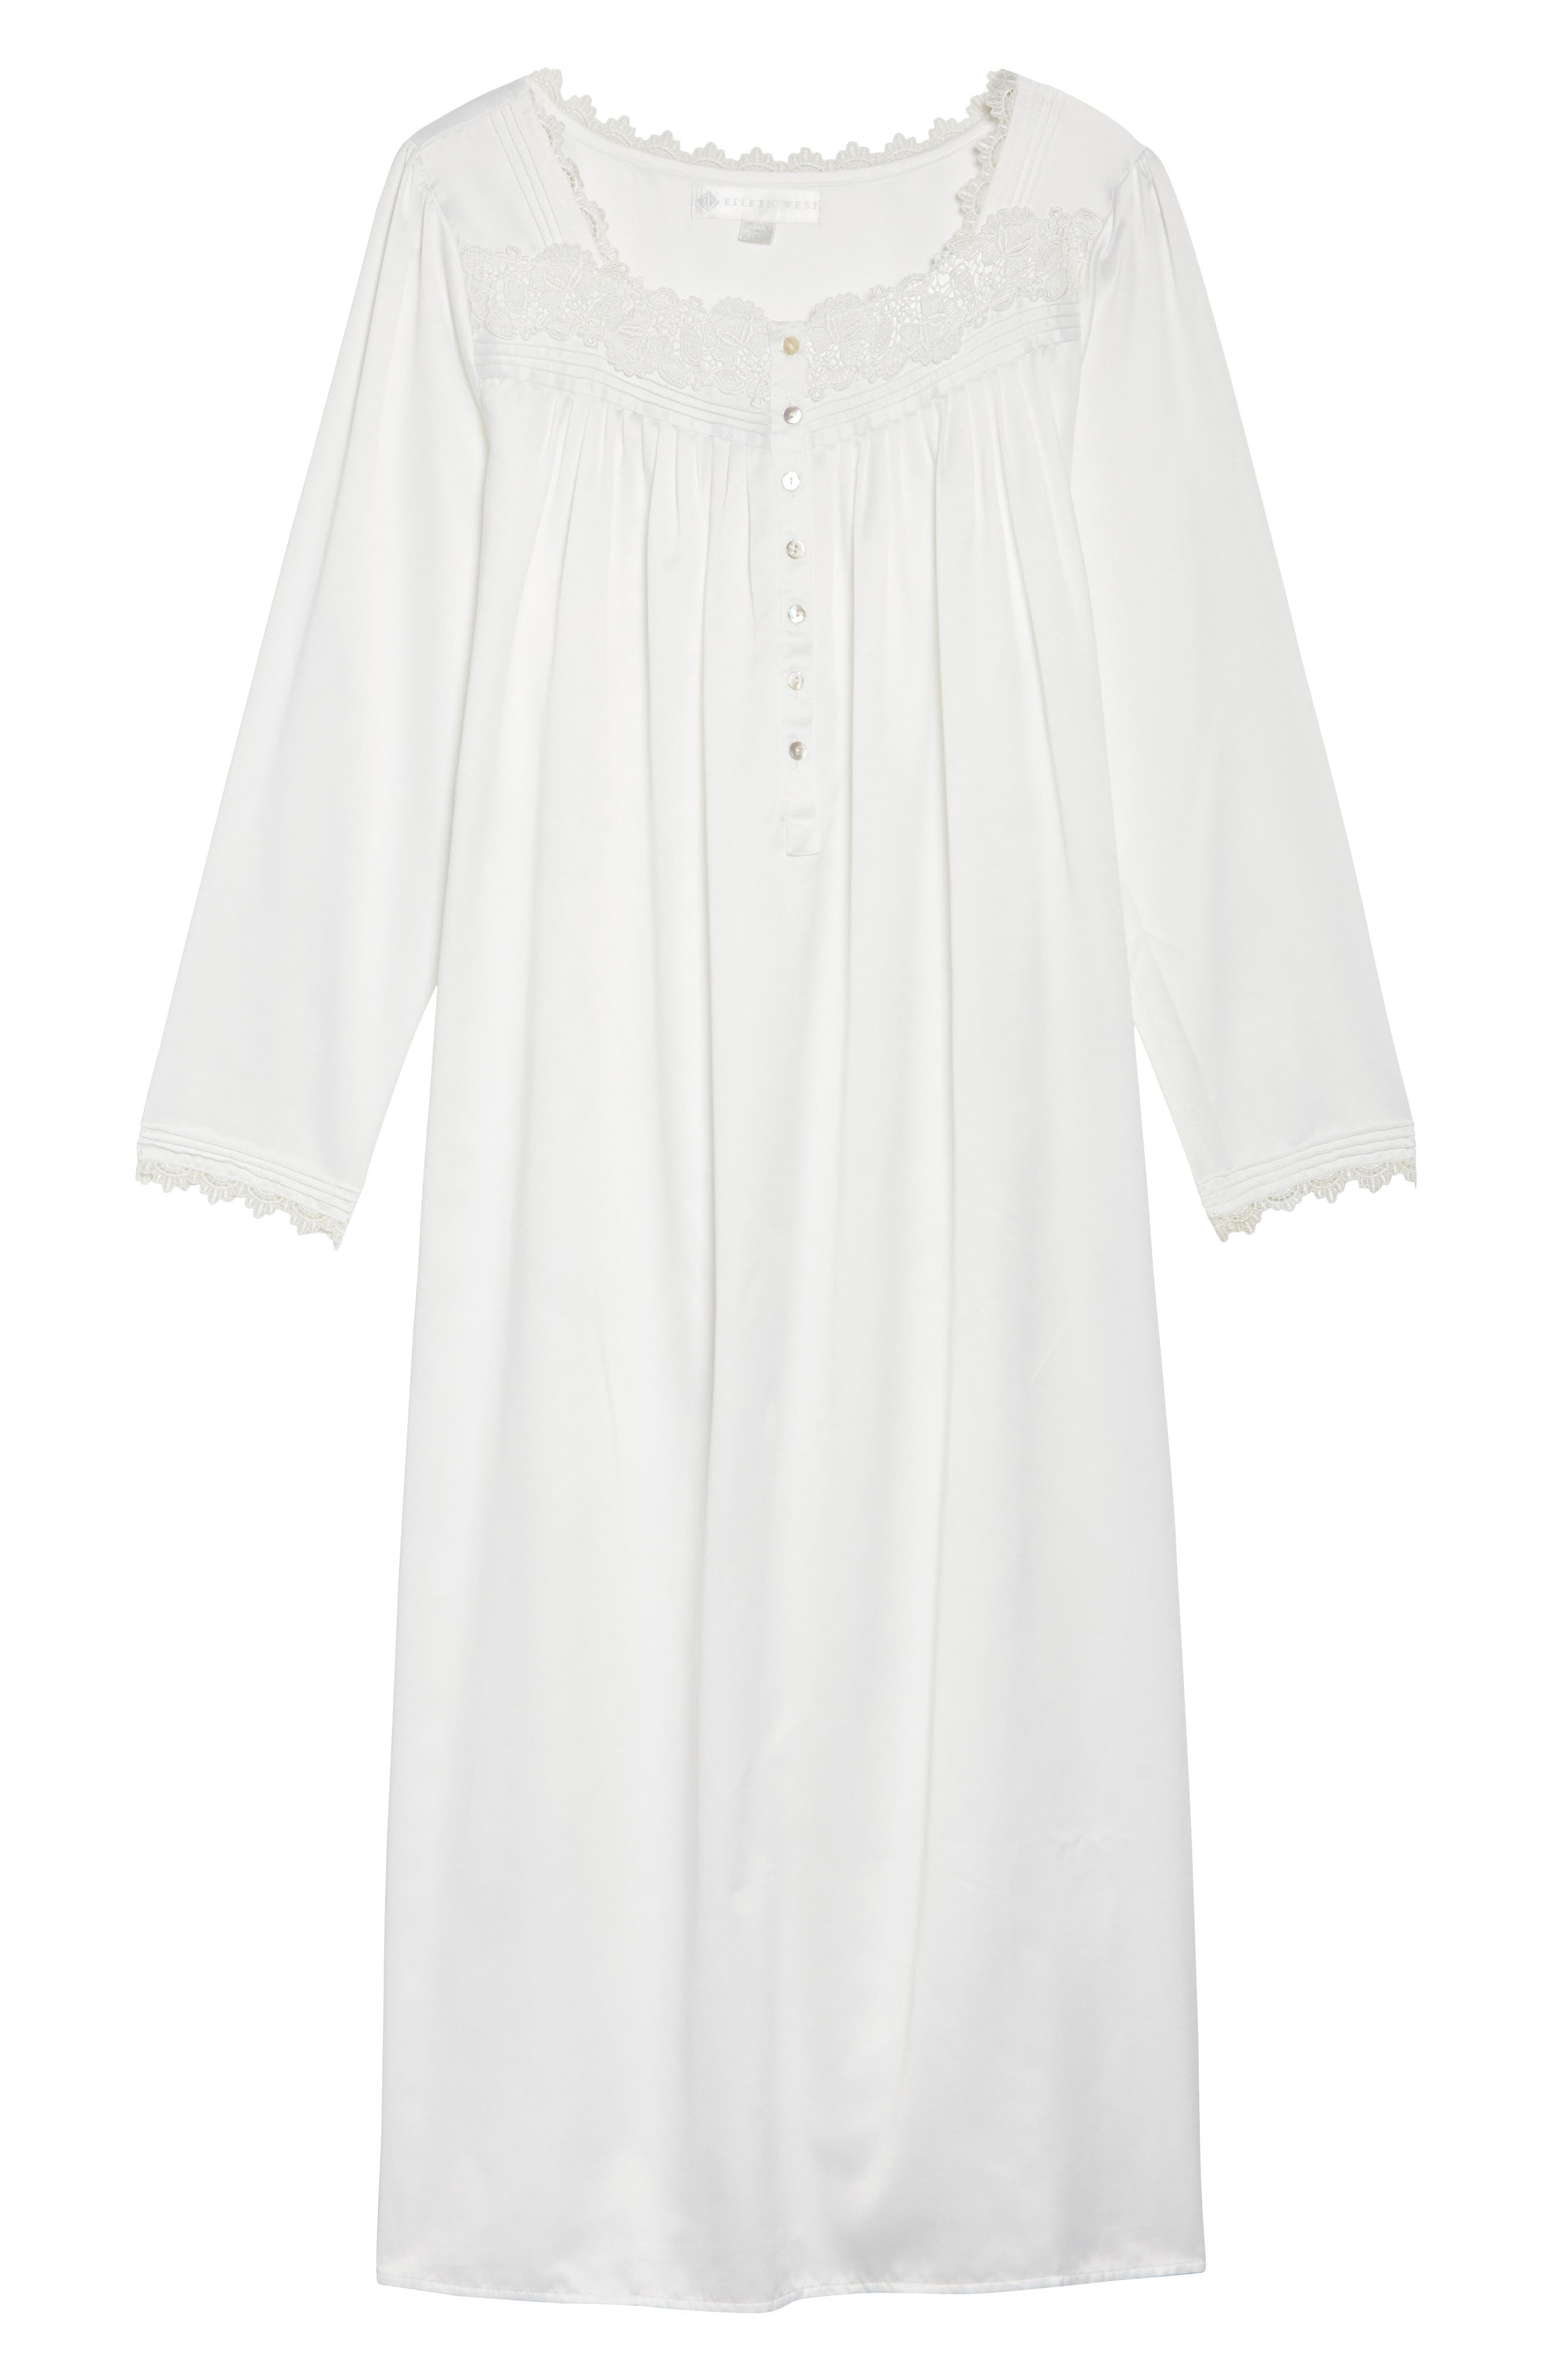 Nightgown,                             Alternate thumbnail 4, color,                             Solid Winter White